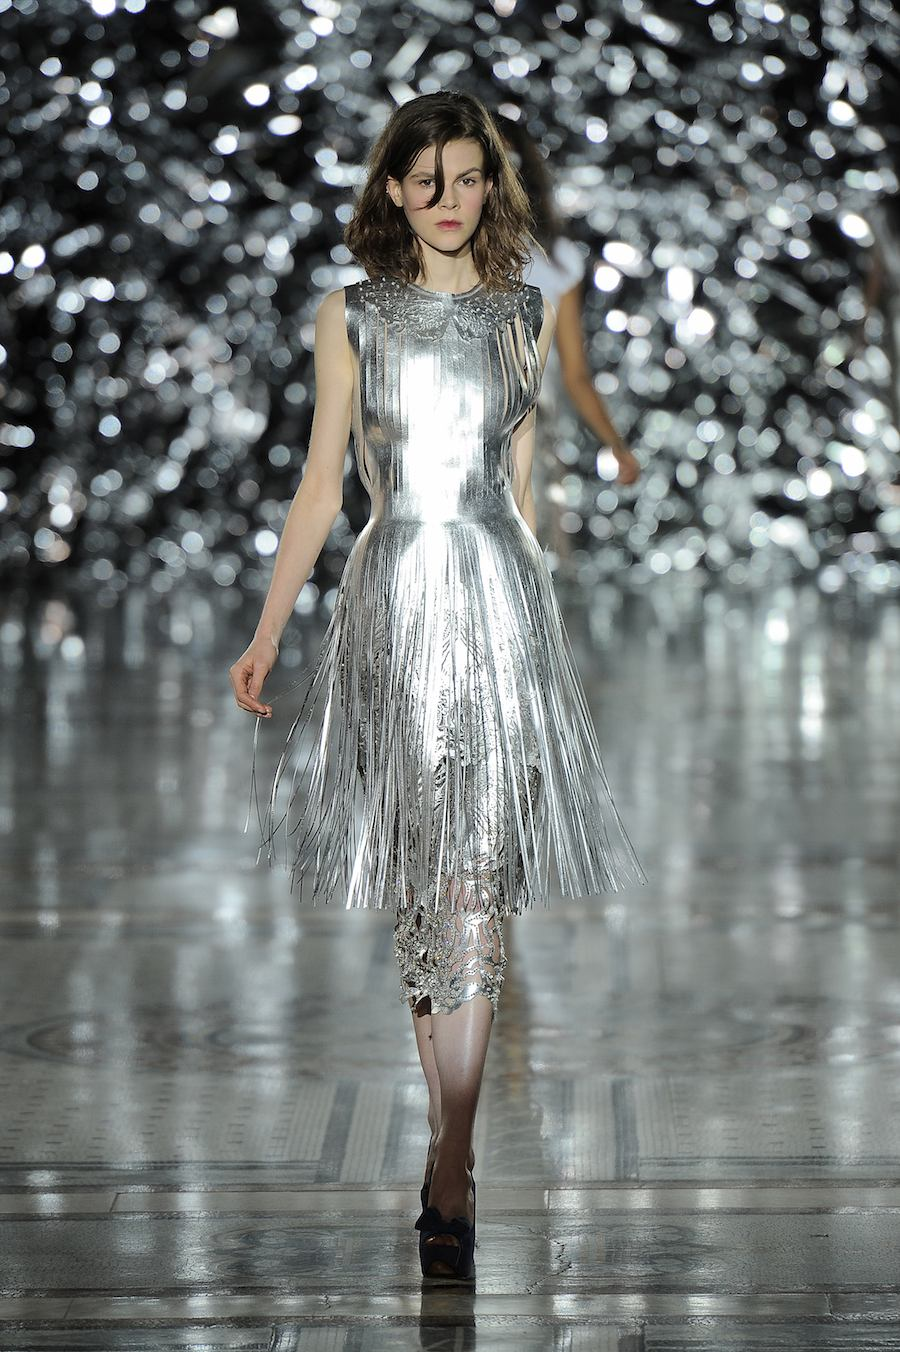 Metallic Leather Fringe Dress by Giles Deacon.